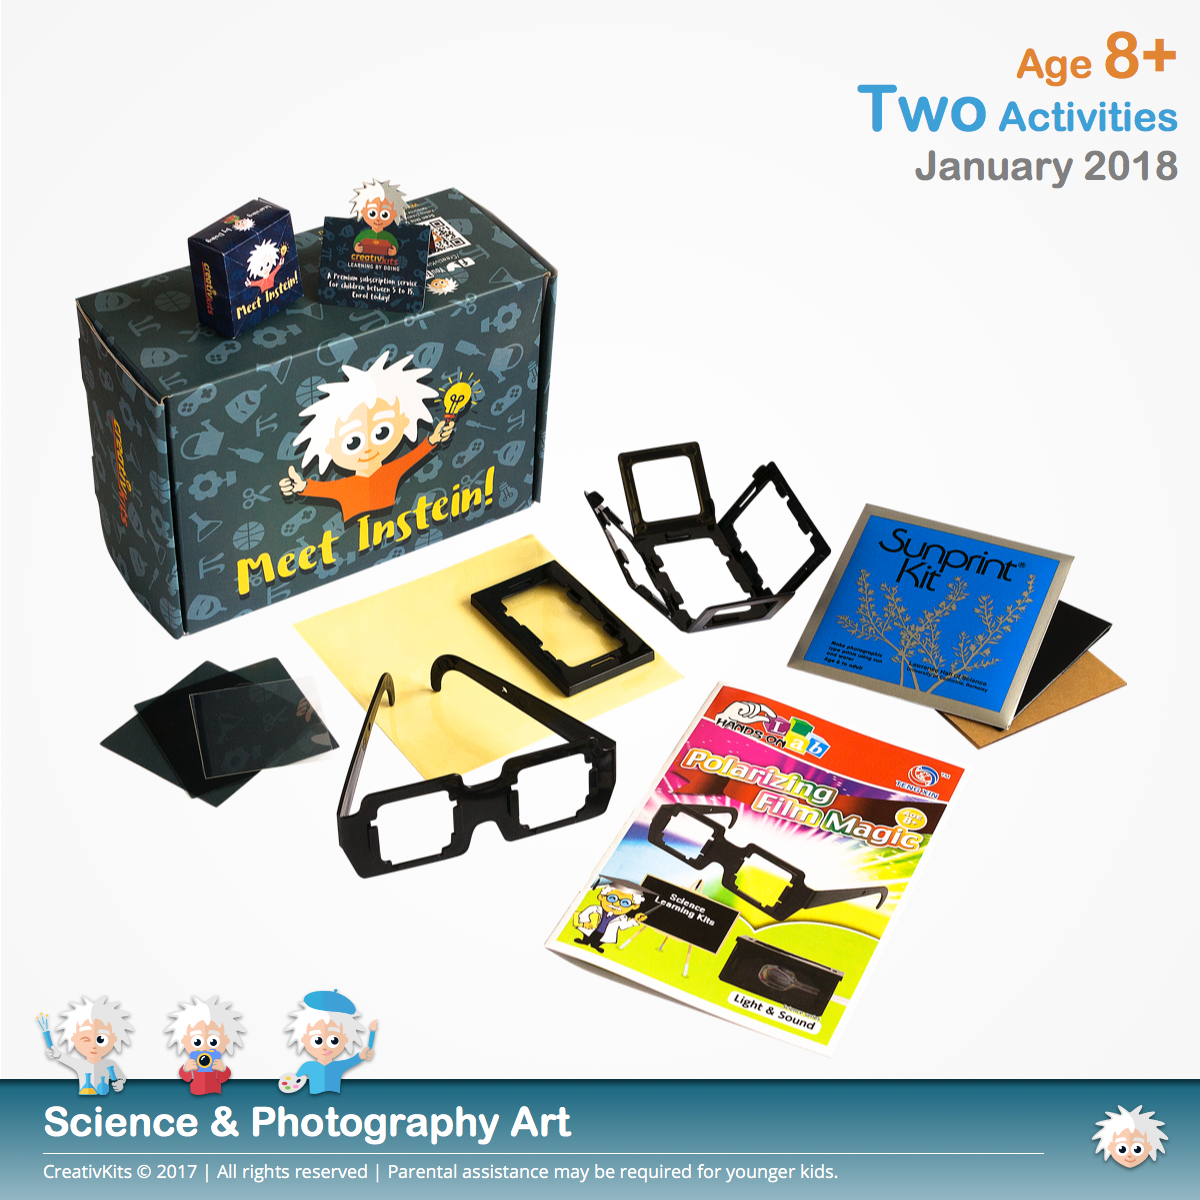 Magic with Polarizing Film & Sun Photography | January Standard Science and Technology Kit | Age 8+